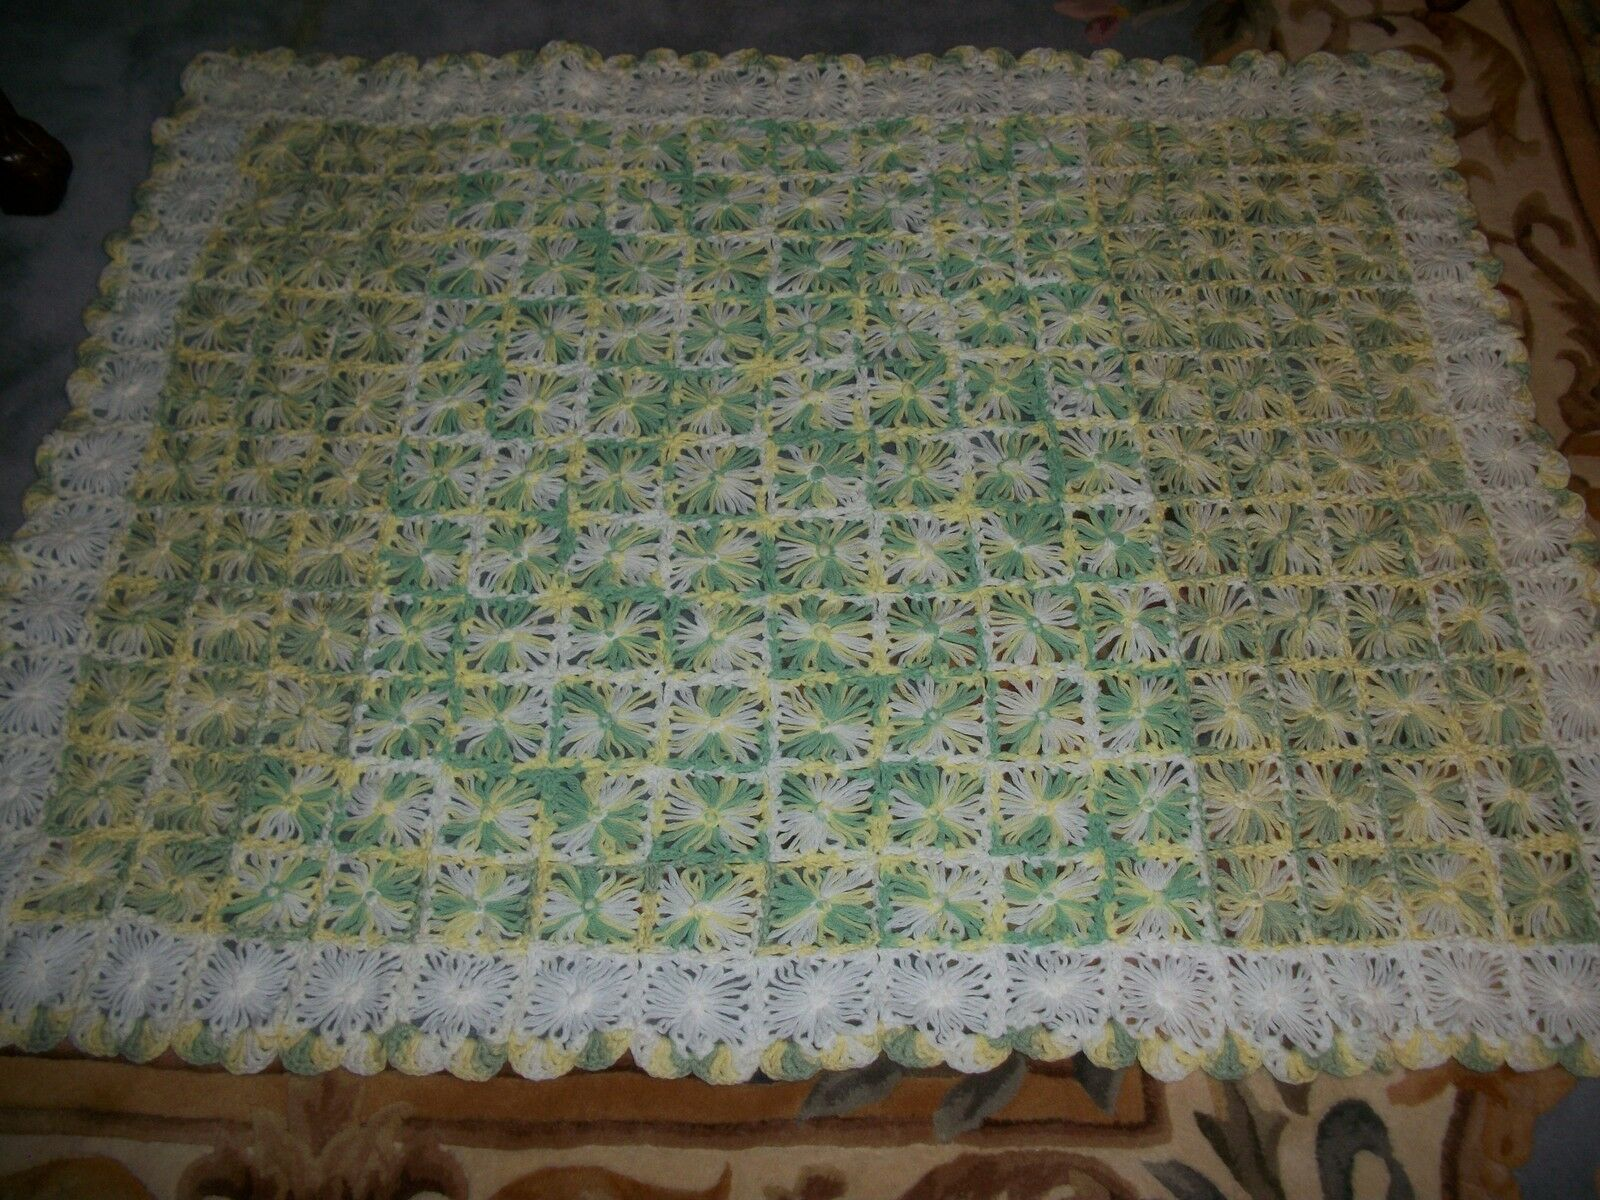 STUNNING HAND CROCHET BABY BLANKET AFGHAN  SIZE 38  x 50  INCHES L@@K